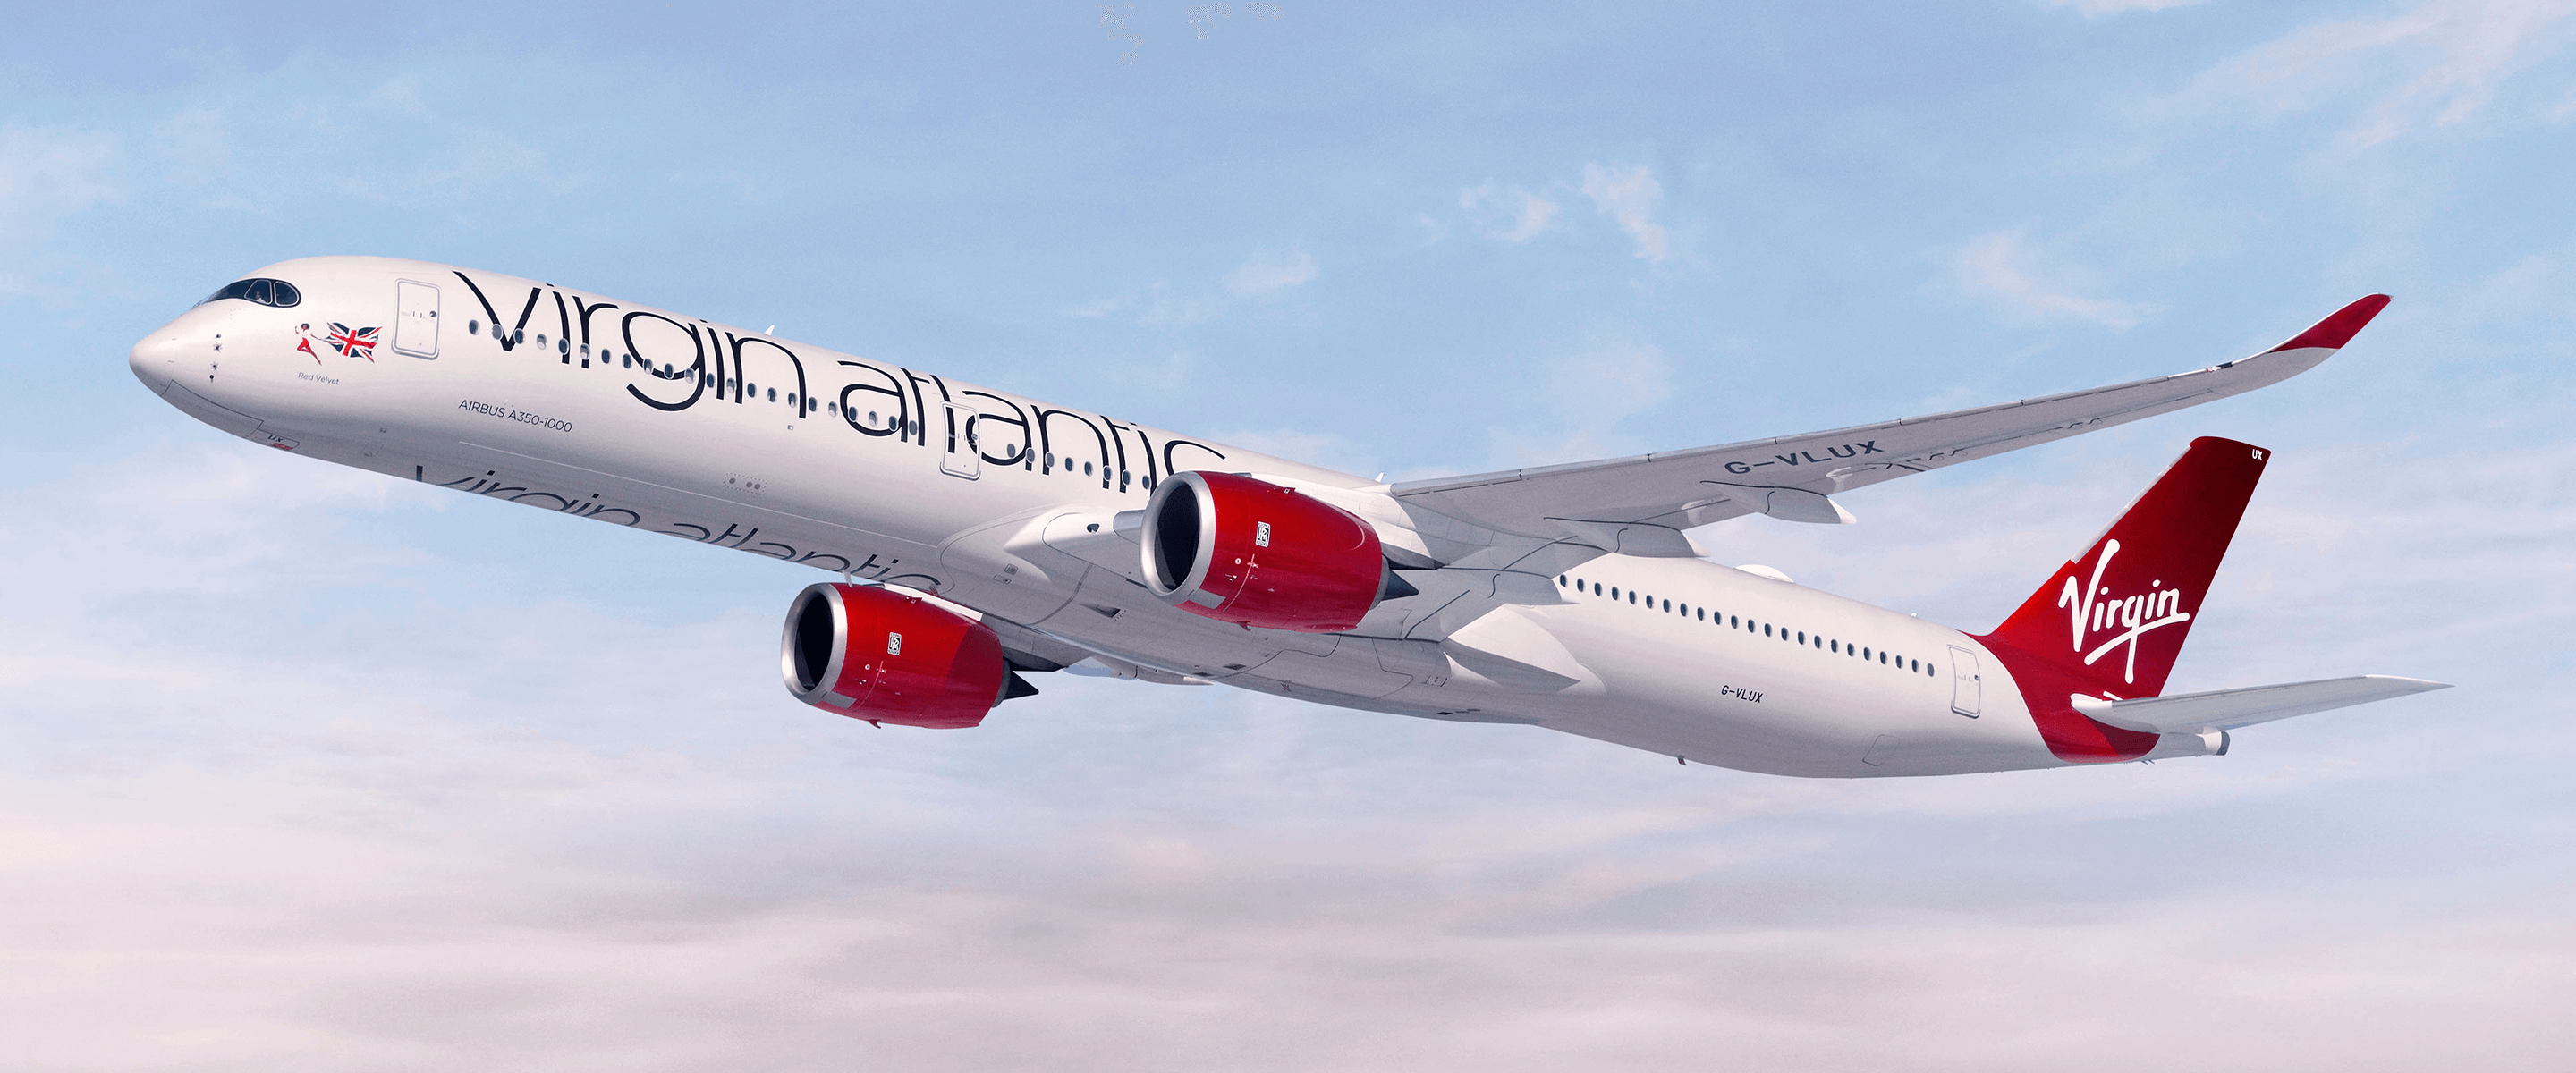 a Virgin Atlantic A350